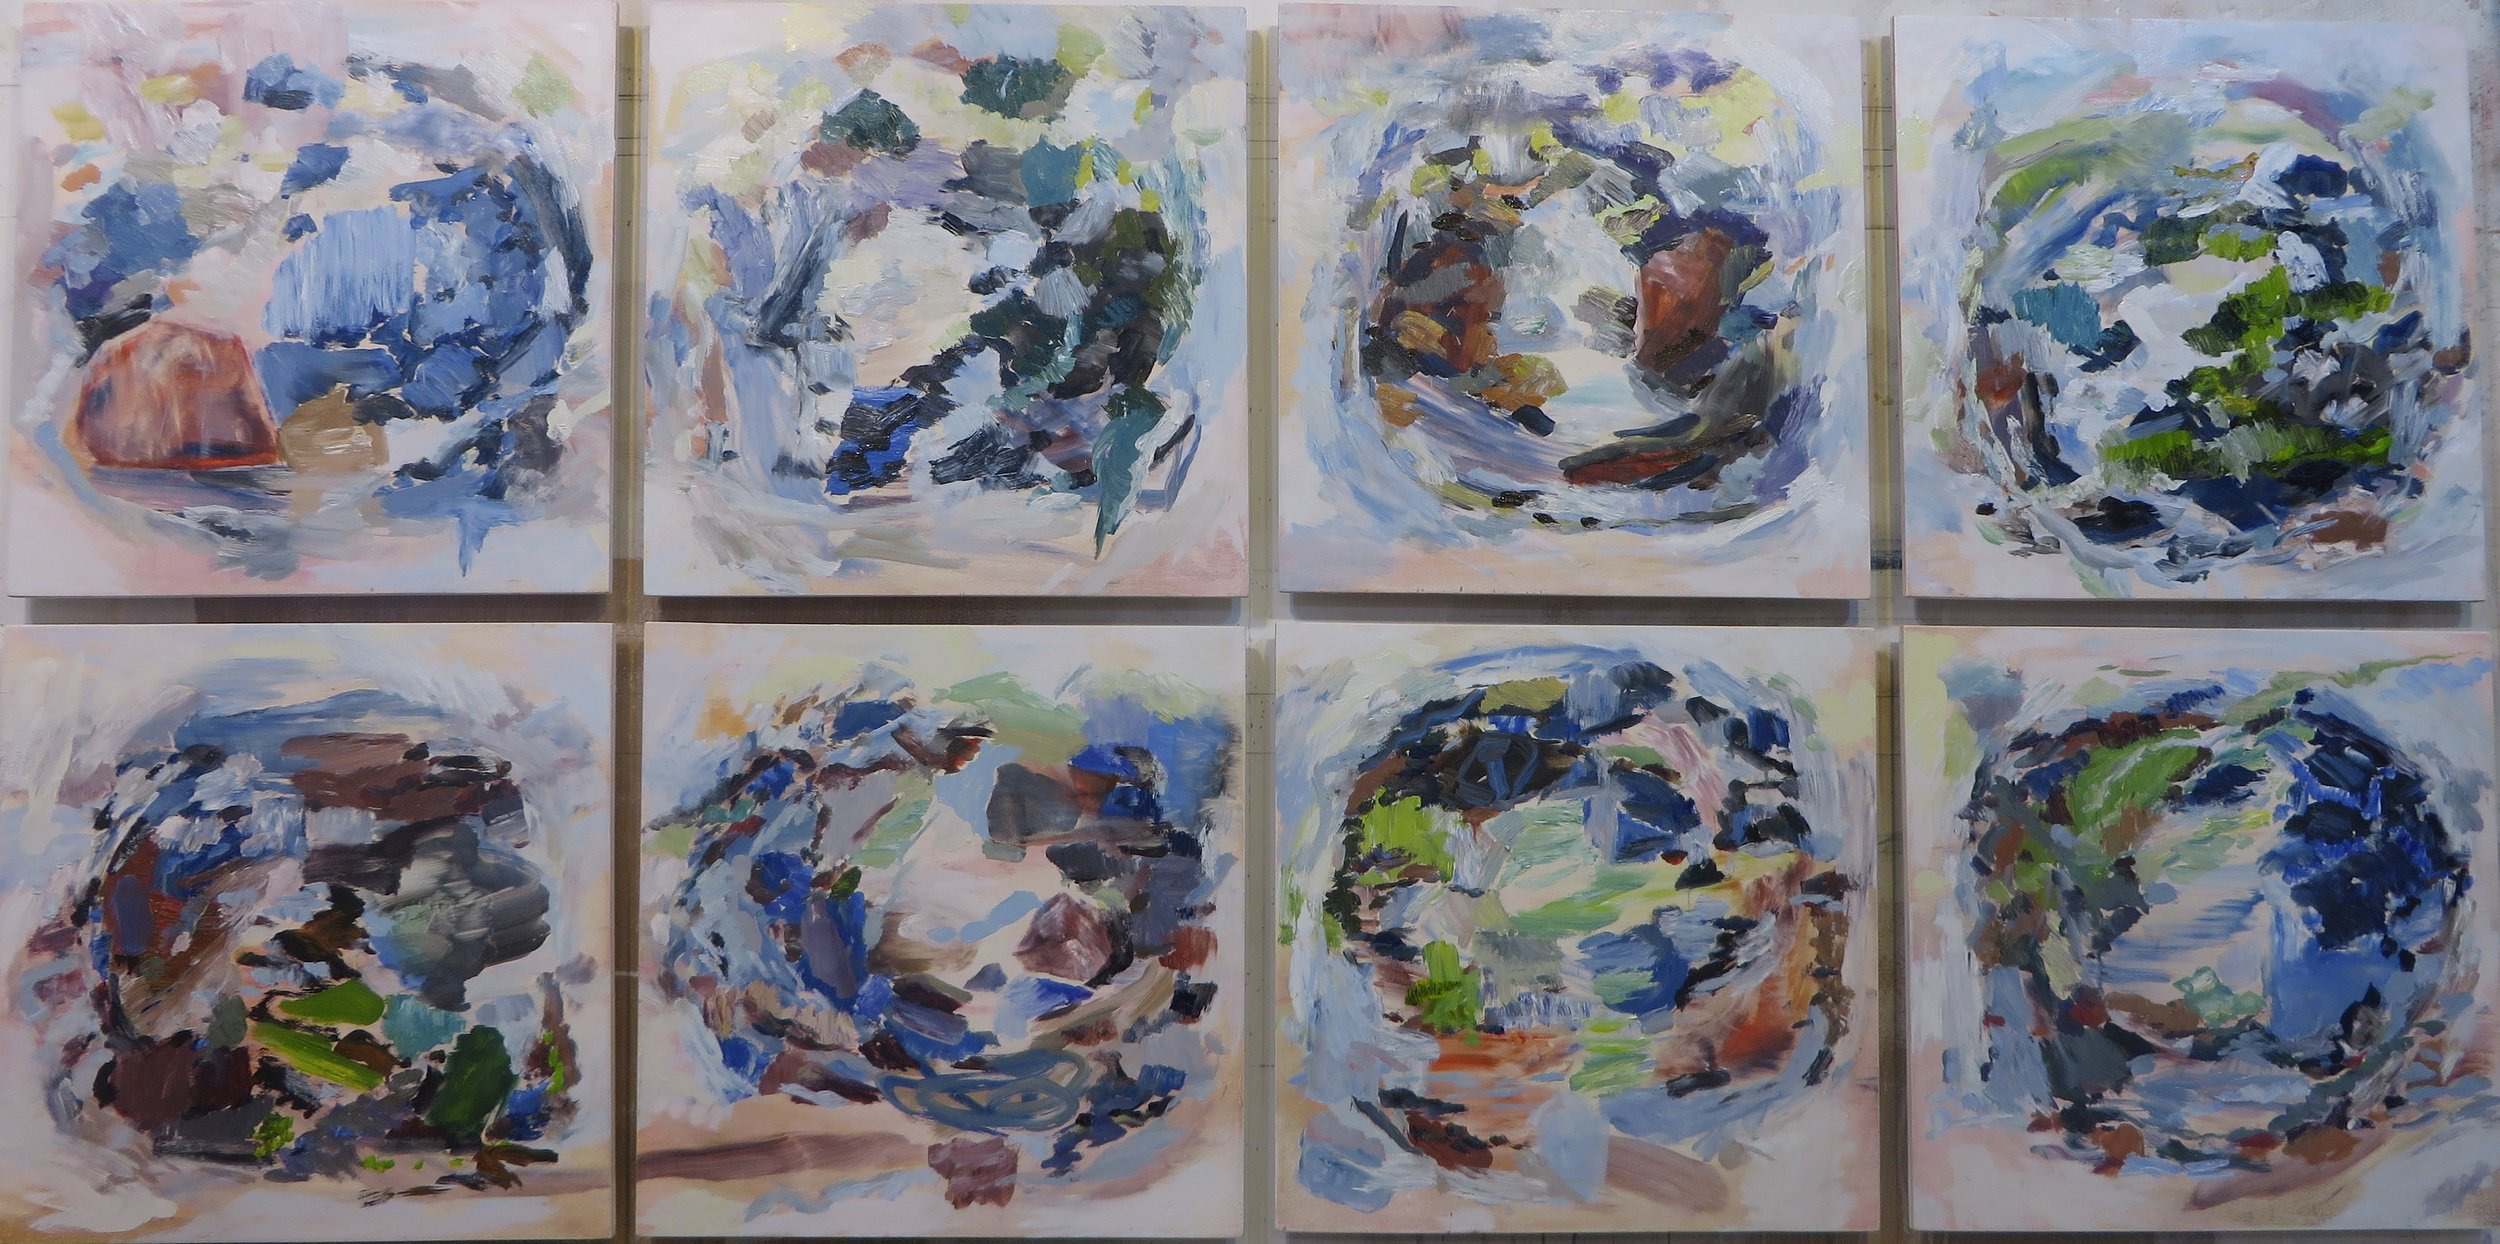 Earth Series 1 - 8, 2014